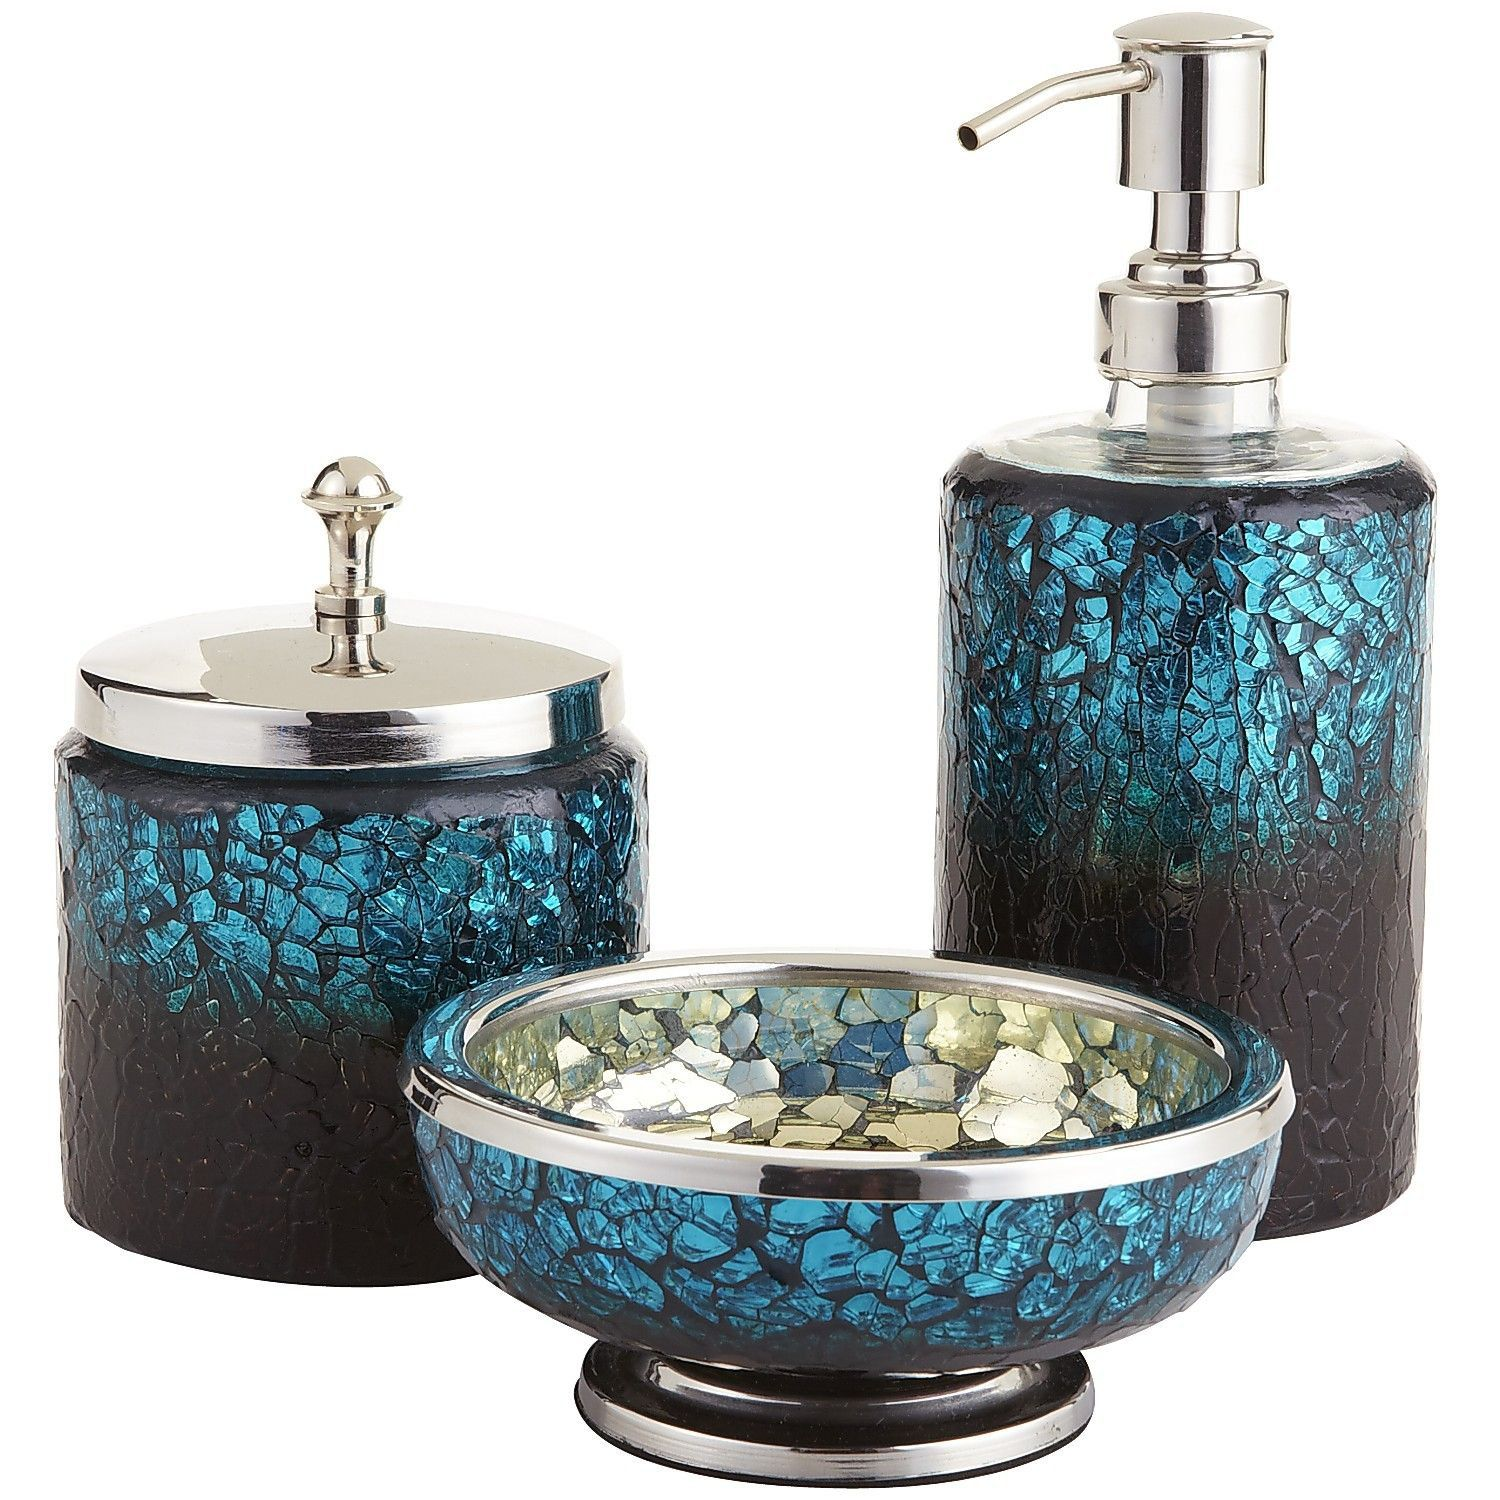 Peacock Mosaic Bath Accessories Peacock Bathroom Decor Bath